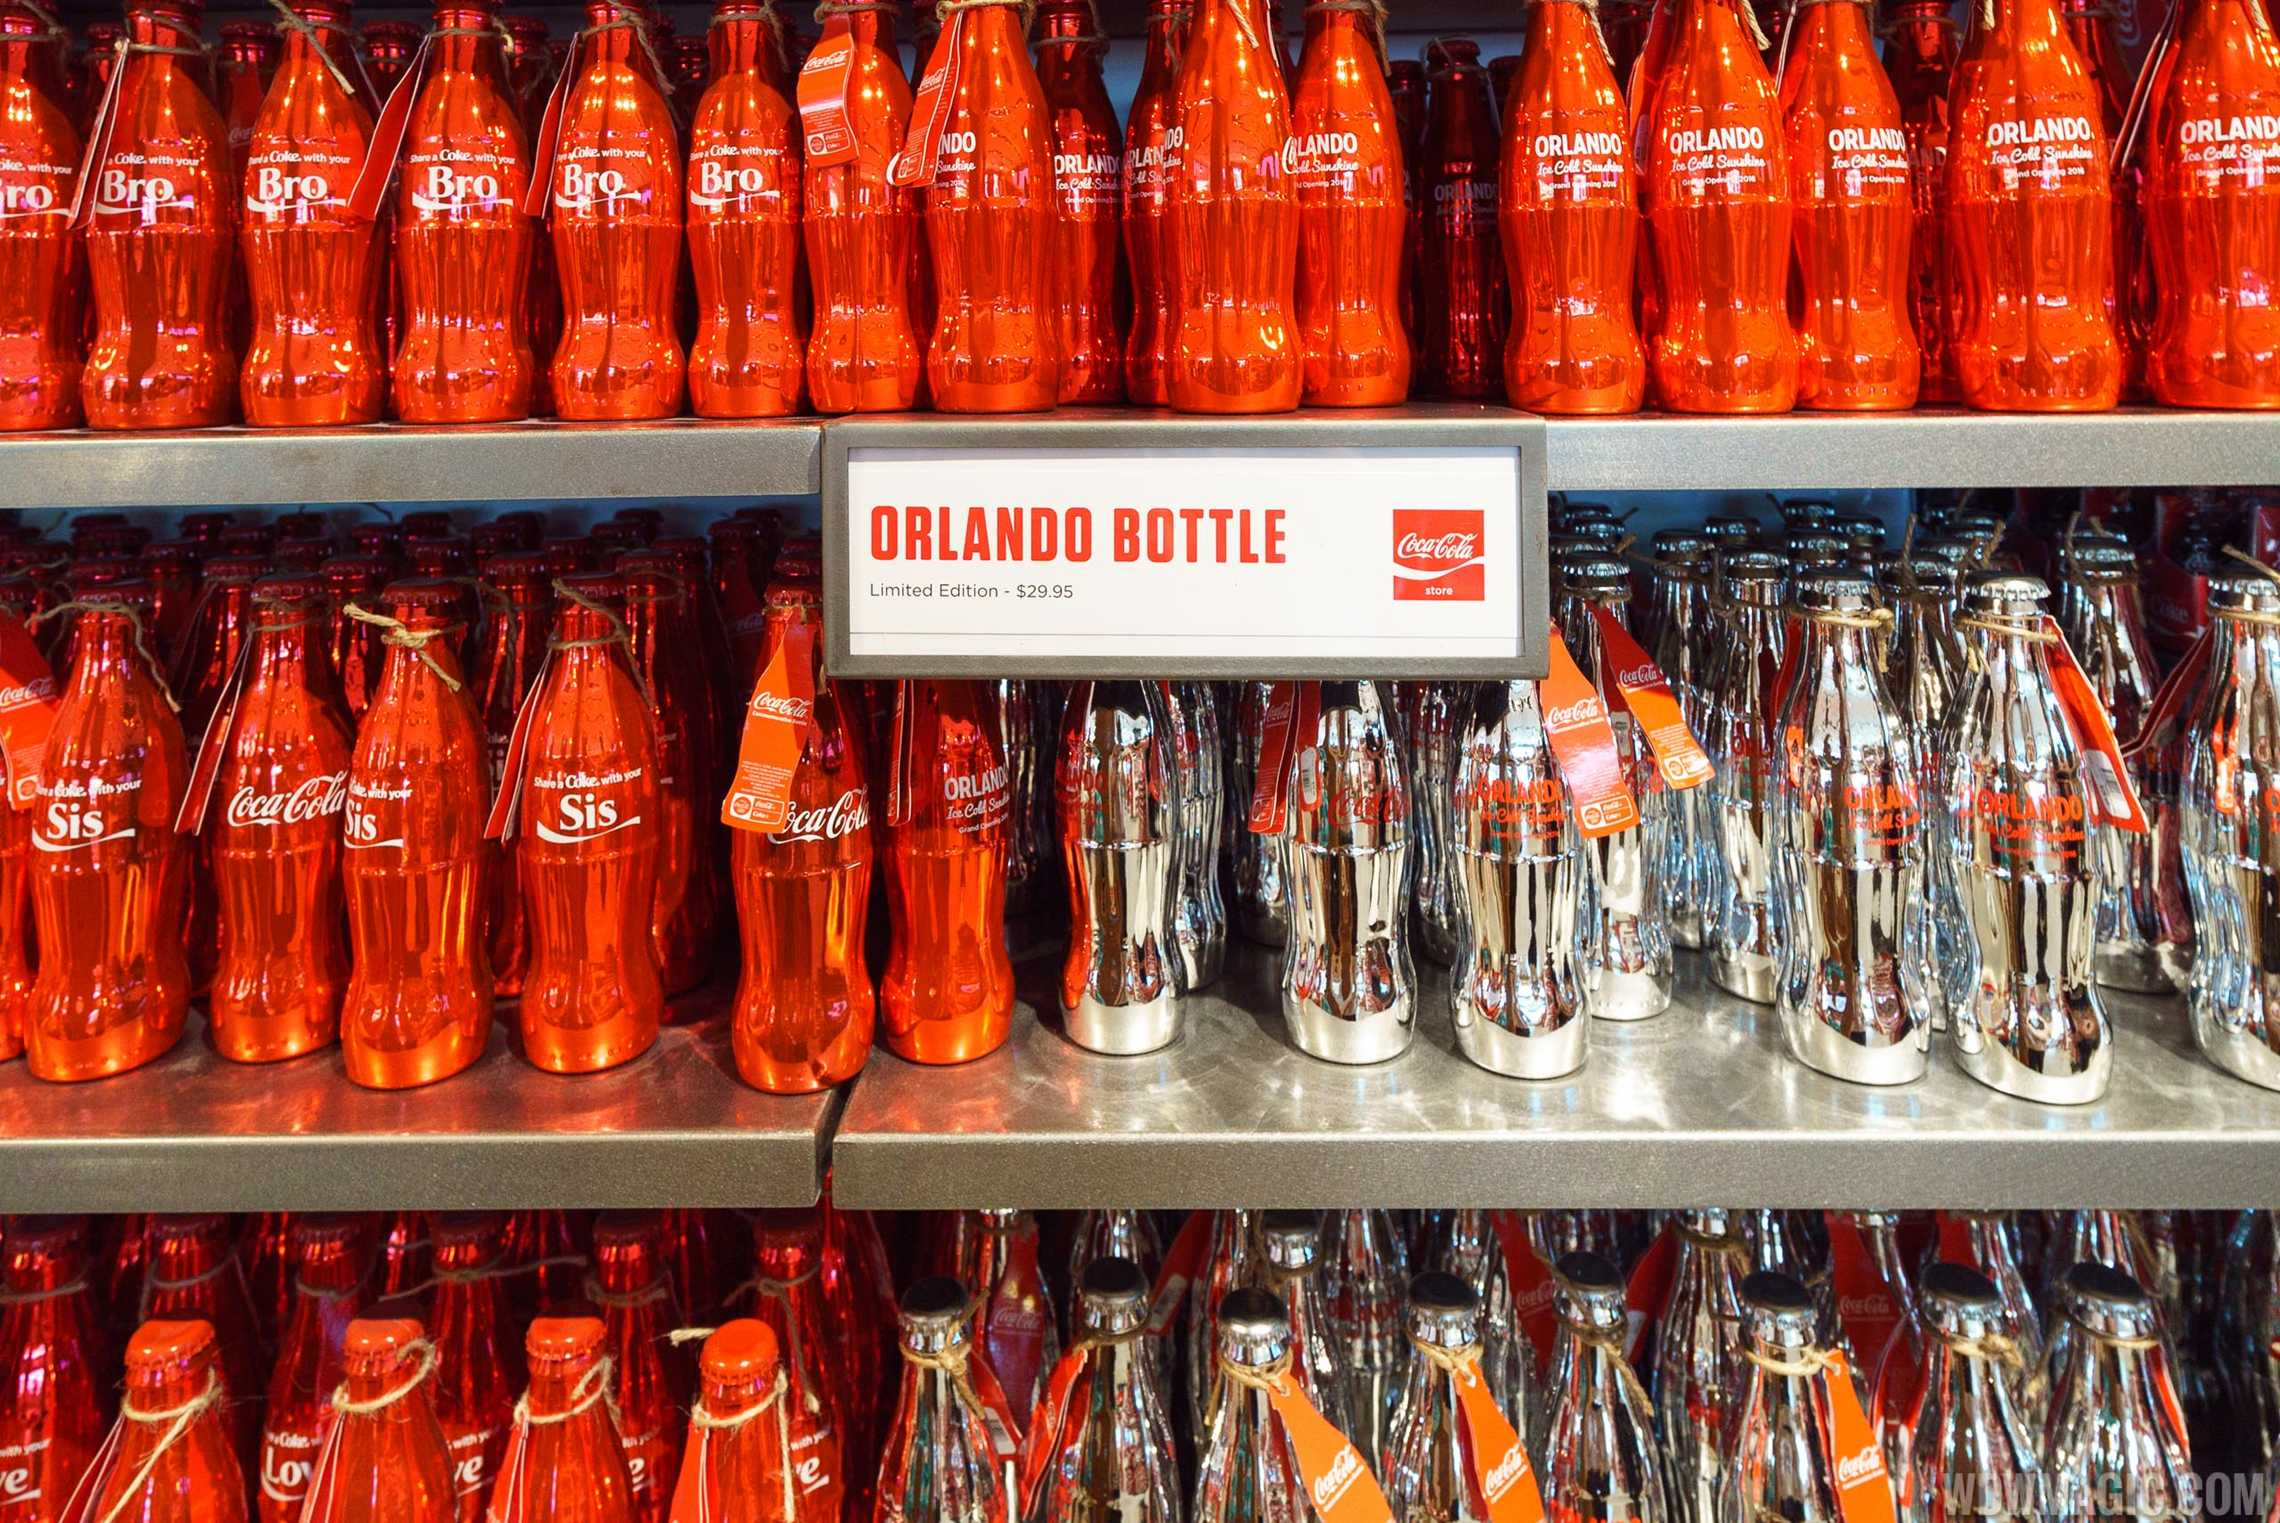 Coca-Cola Store Orlando - Orlando bottle limited edition